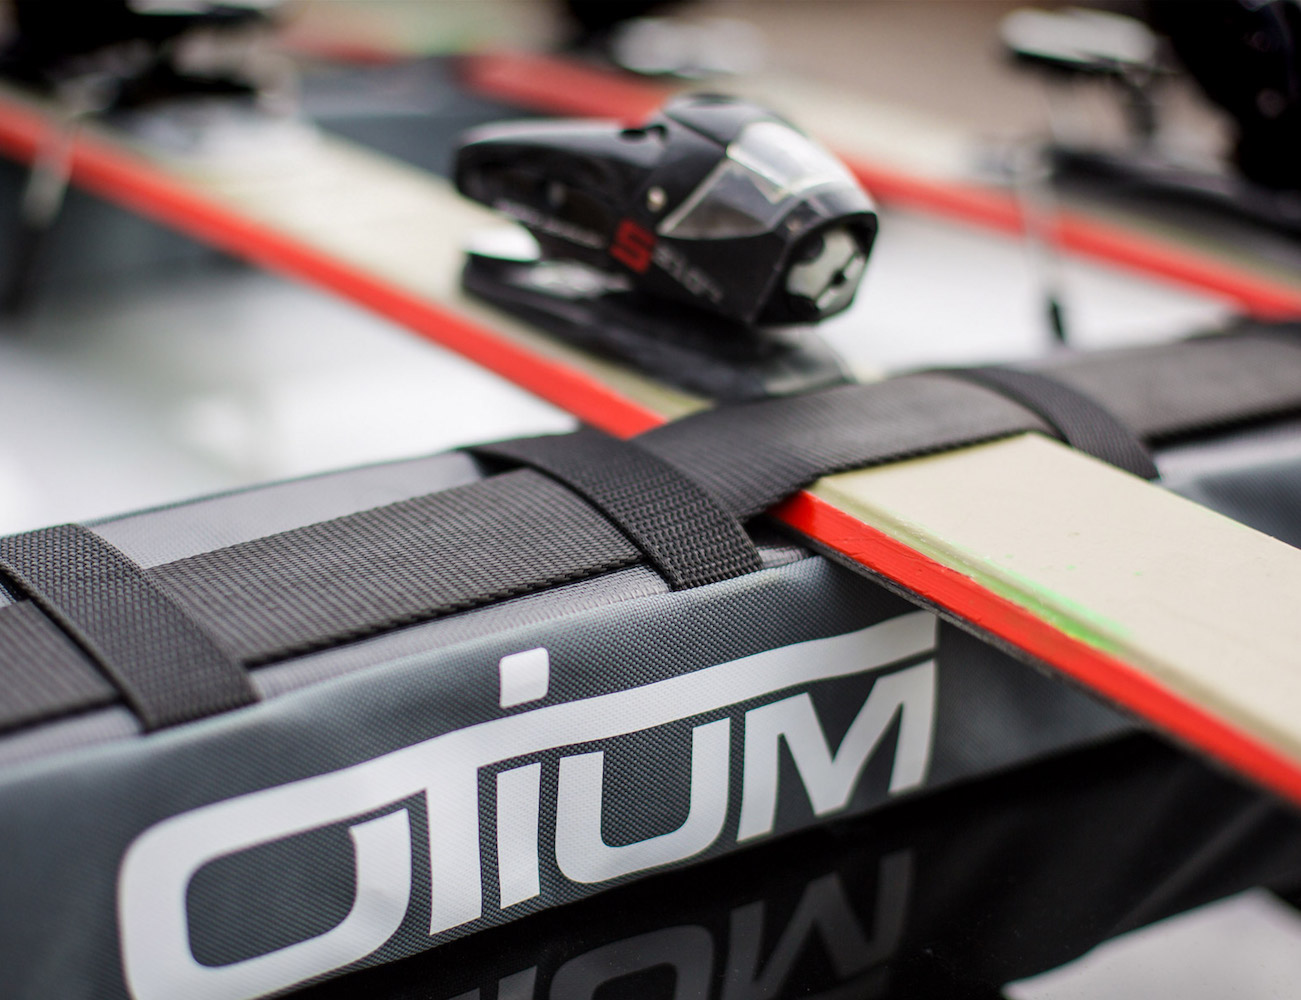 otium-soft-vehicle-rack-01